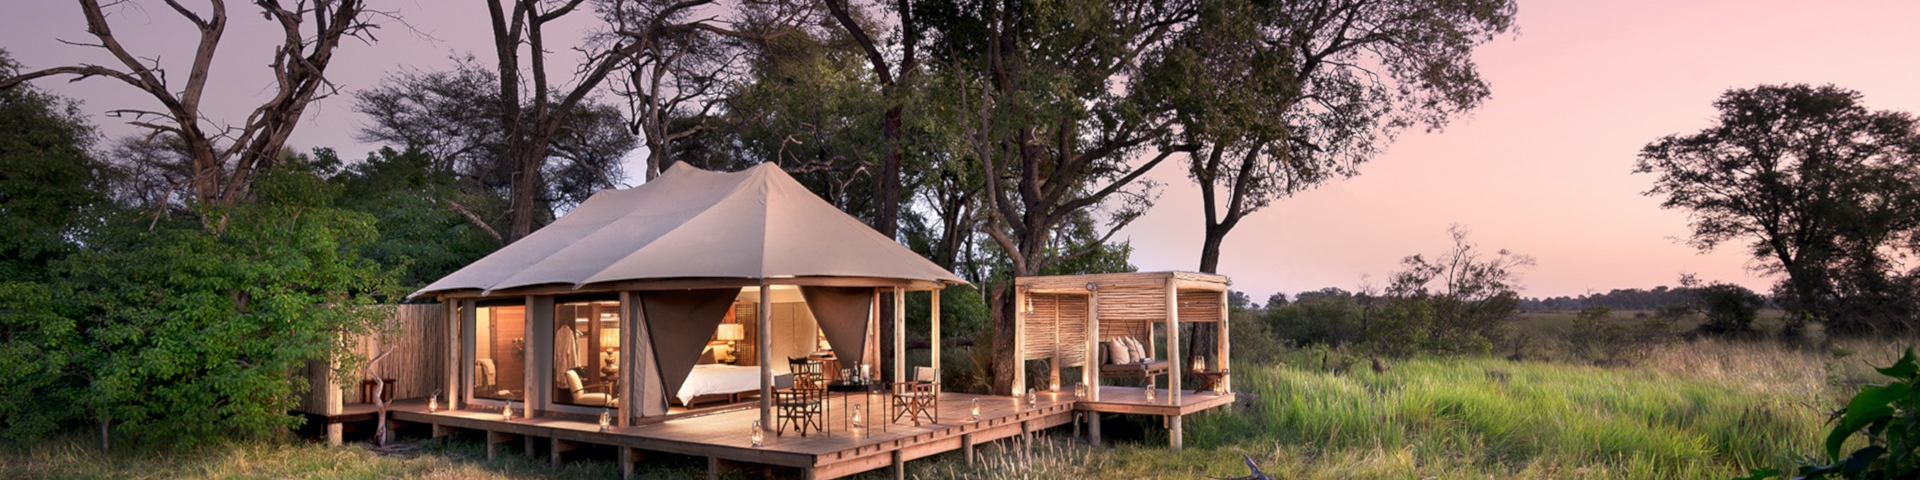 Accommodation in Okavango Delta - Botswana